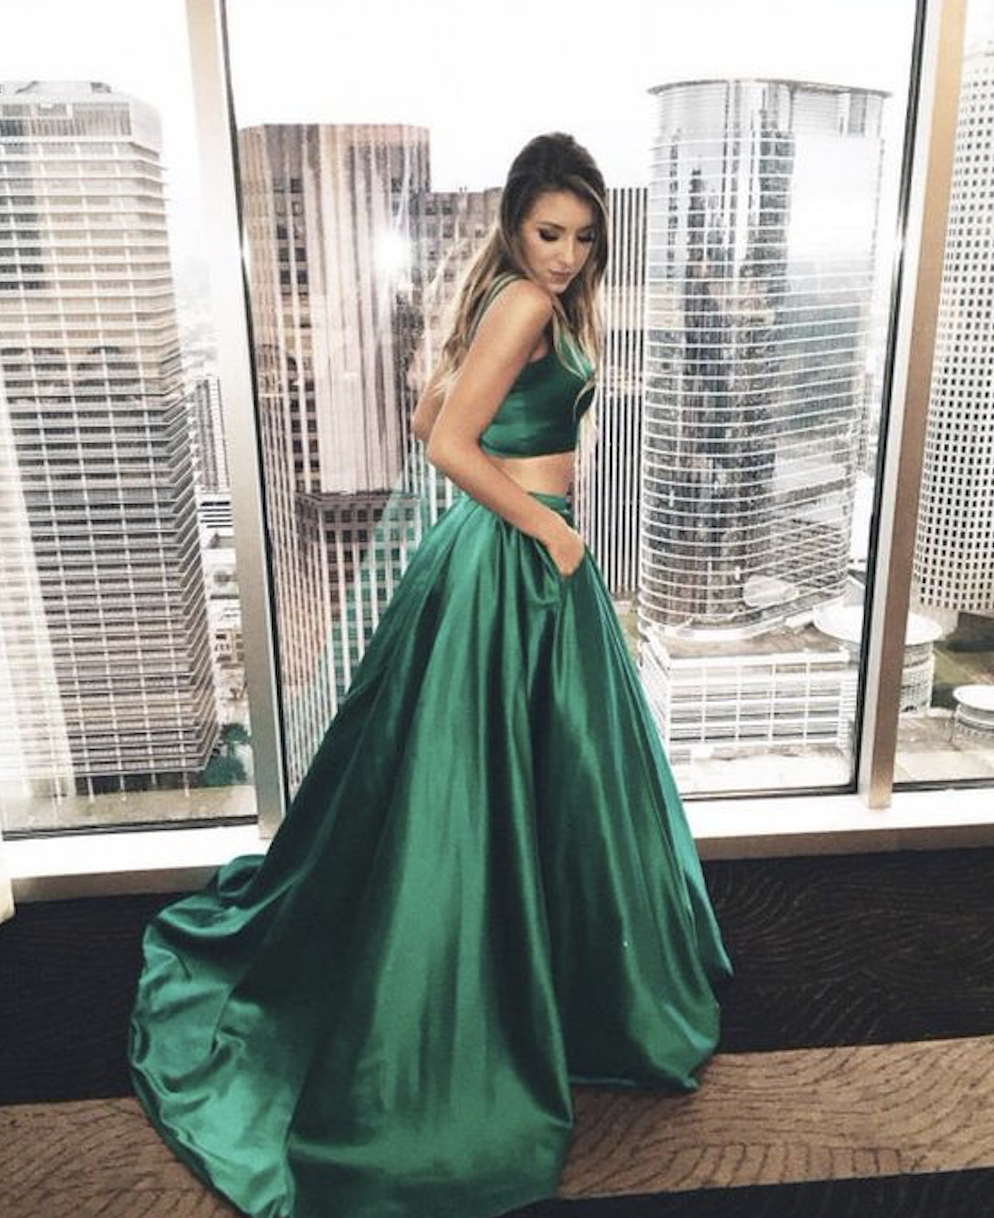 Green backless prom dress  two pieces green long prom dress  Beautiful Dresses  Pinterest